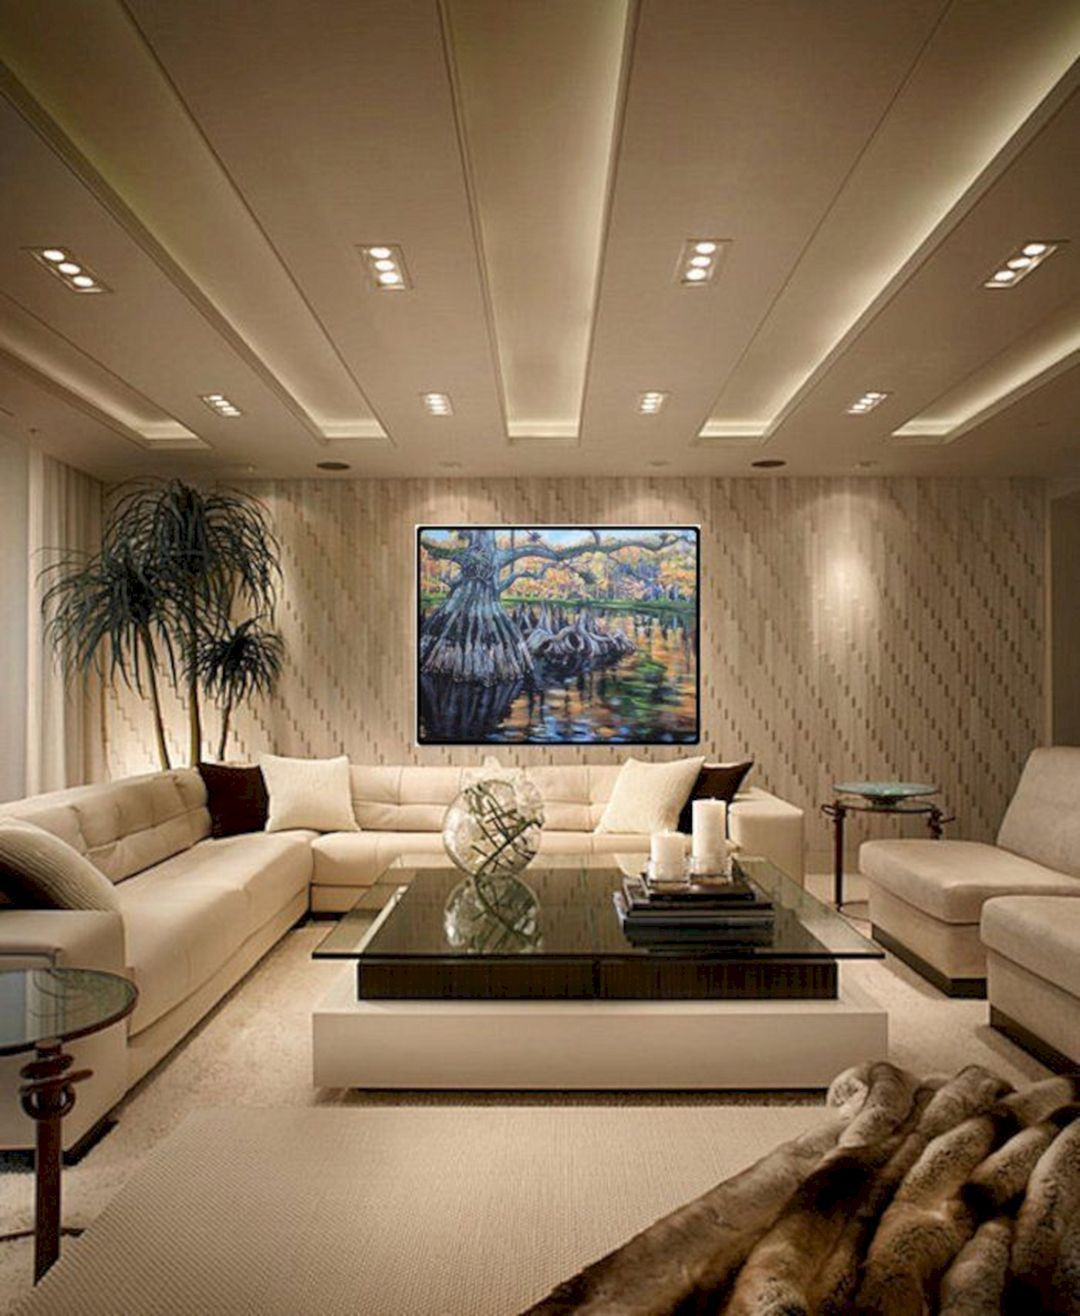 10 Luxury Lighting Design For Stunning Living Room Decoration